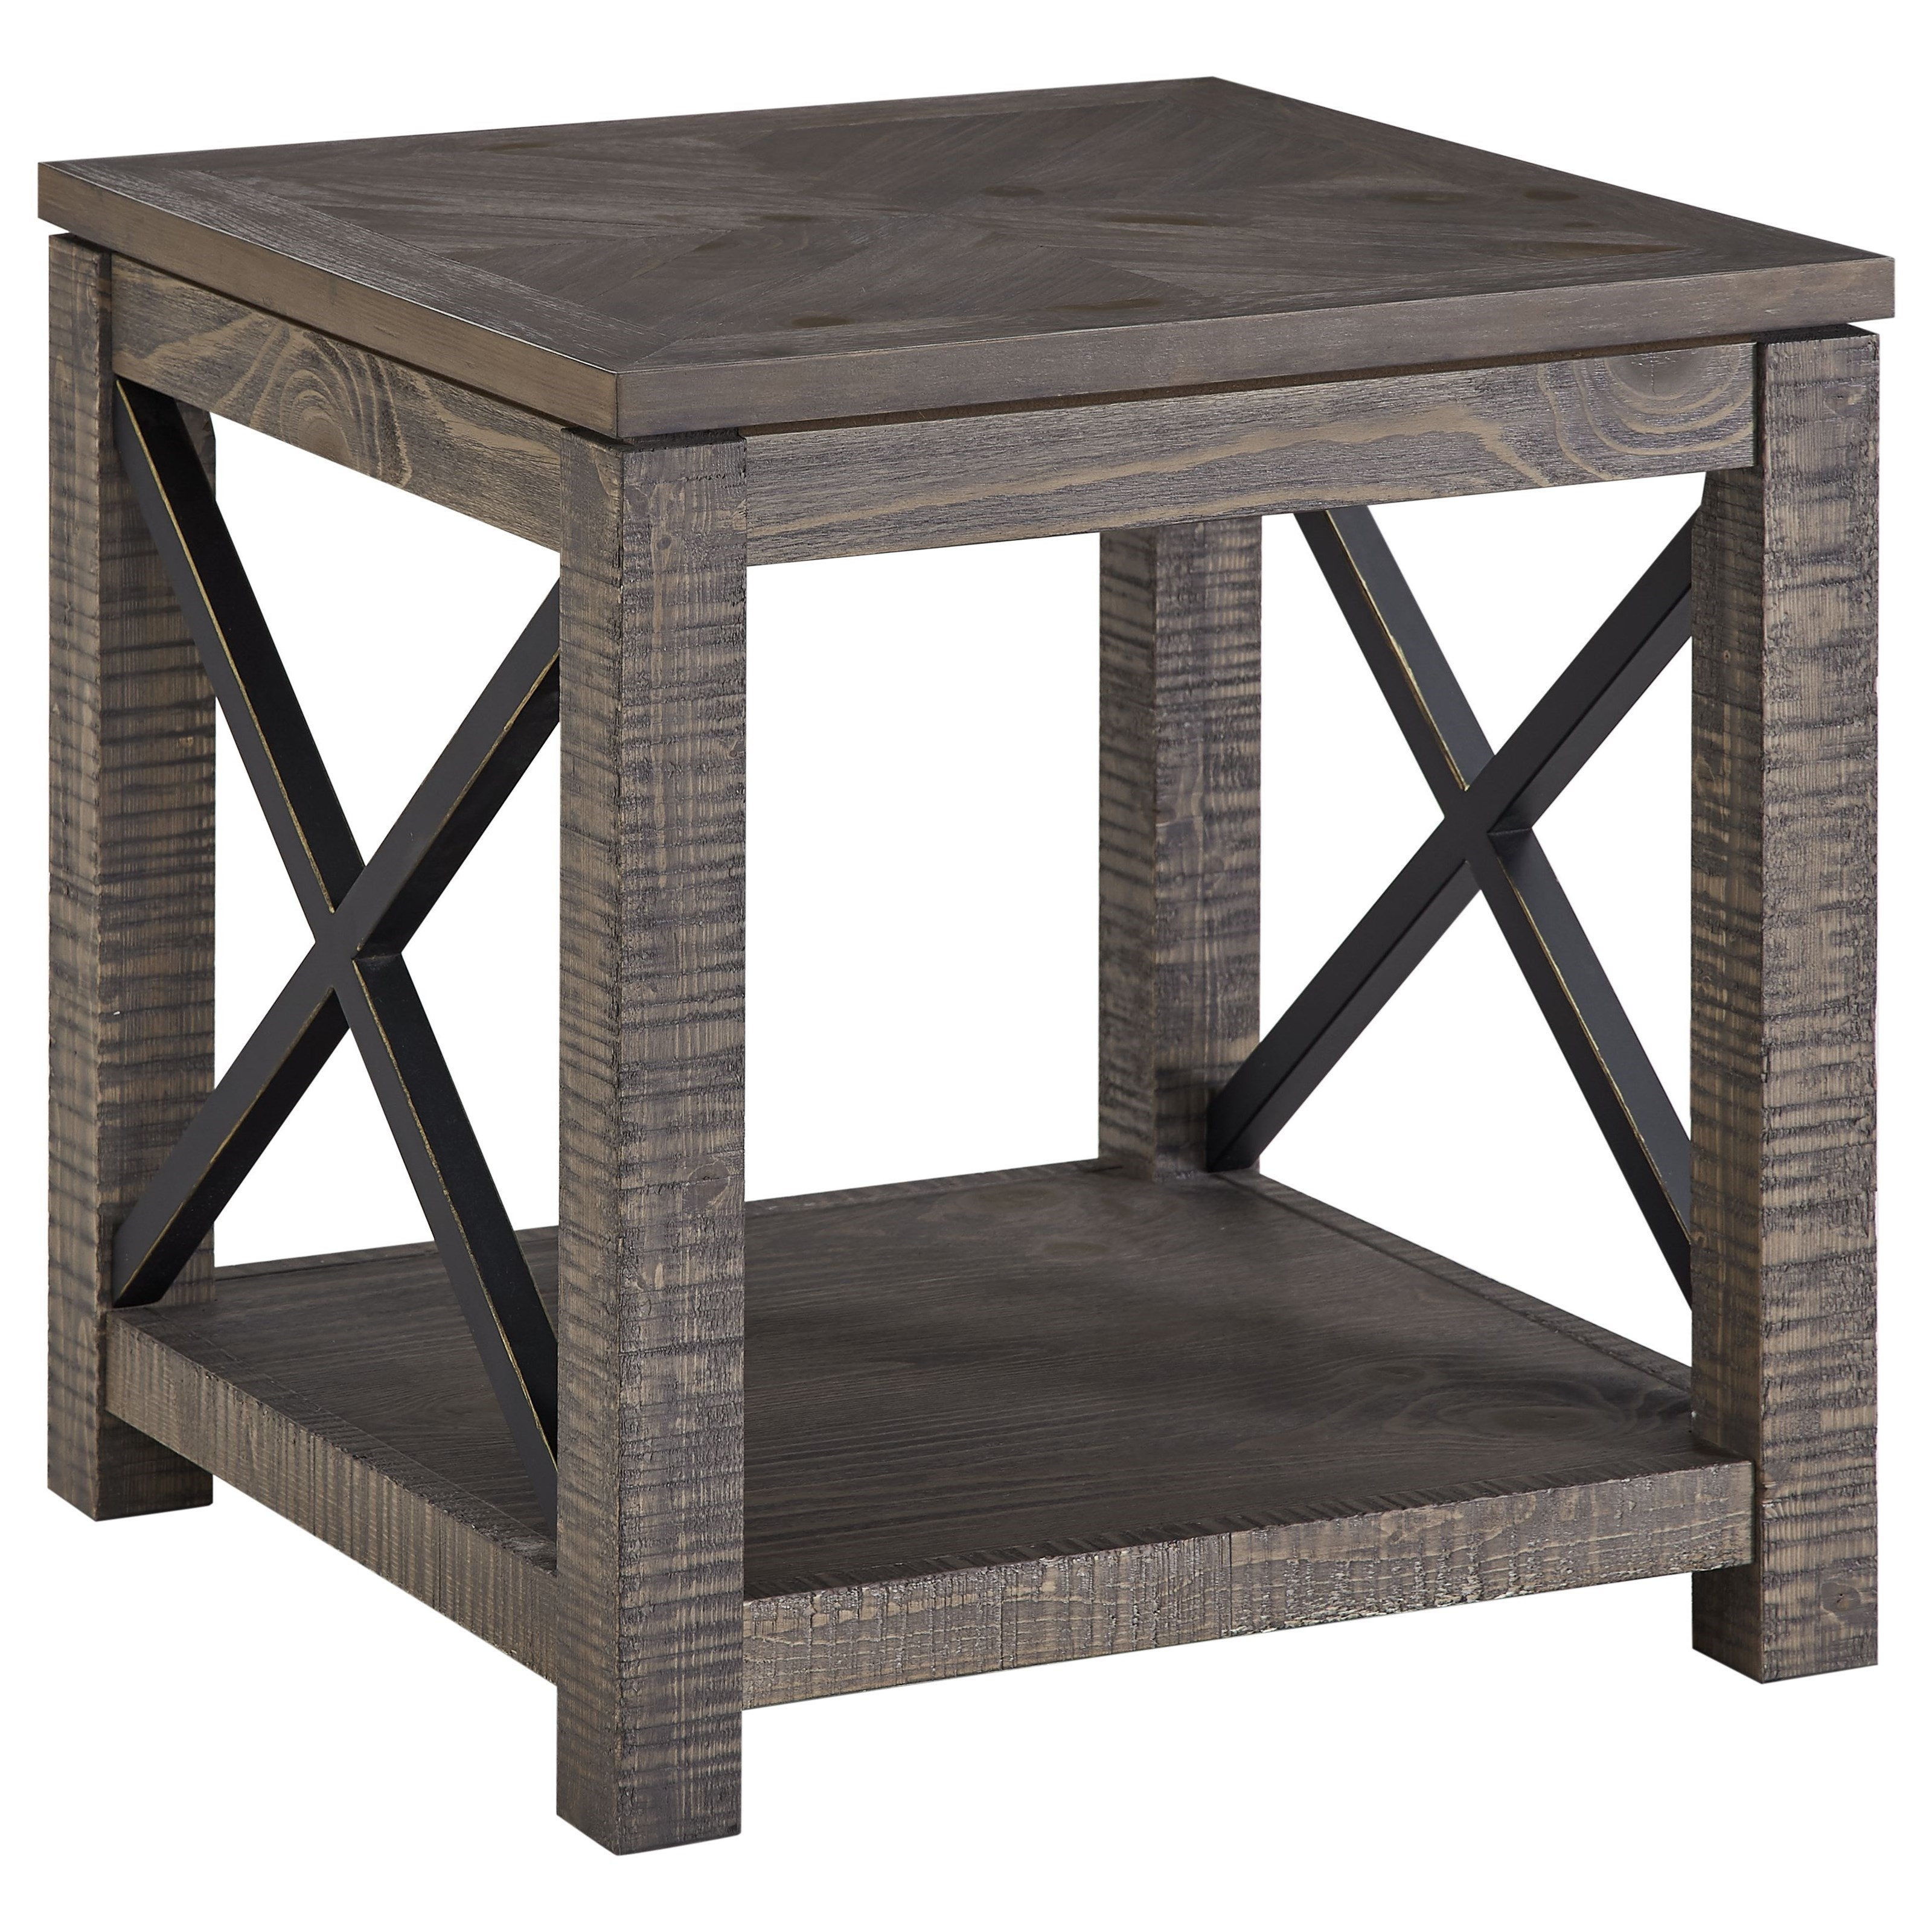 Dexter End Table by Steve Silver at Miller Home